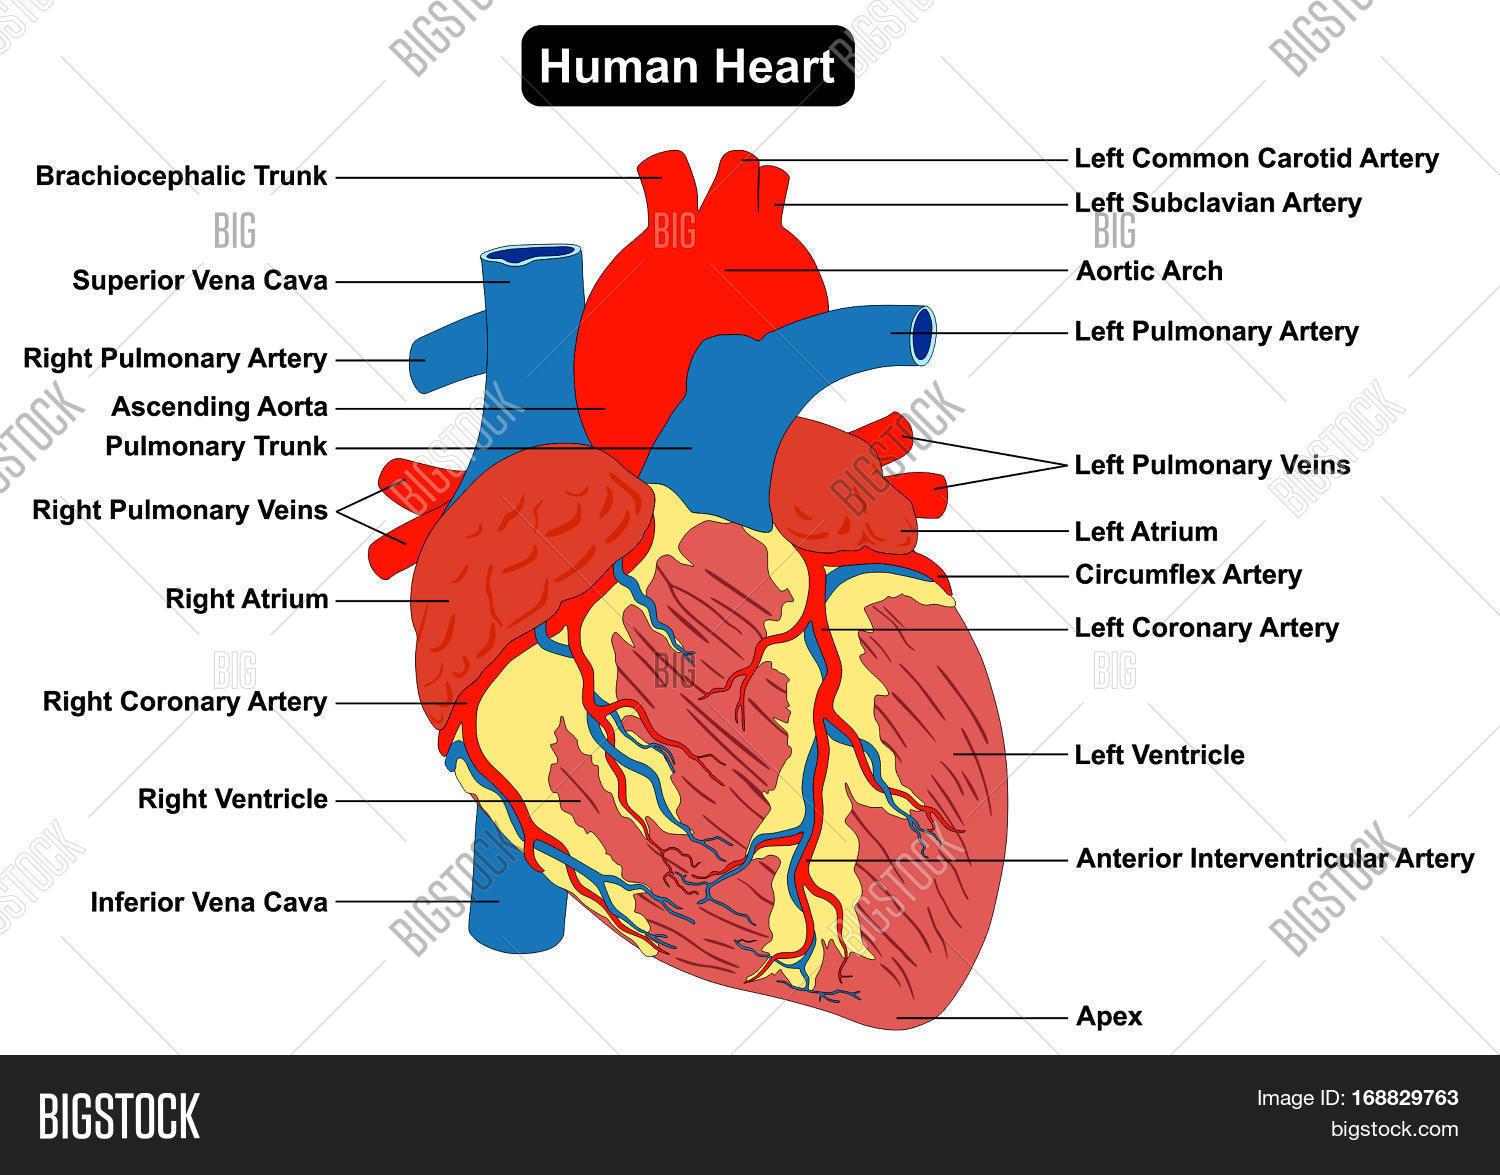 Human Heart Muscle Image Photo Free Trial Bigstock